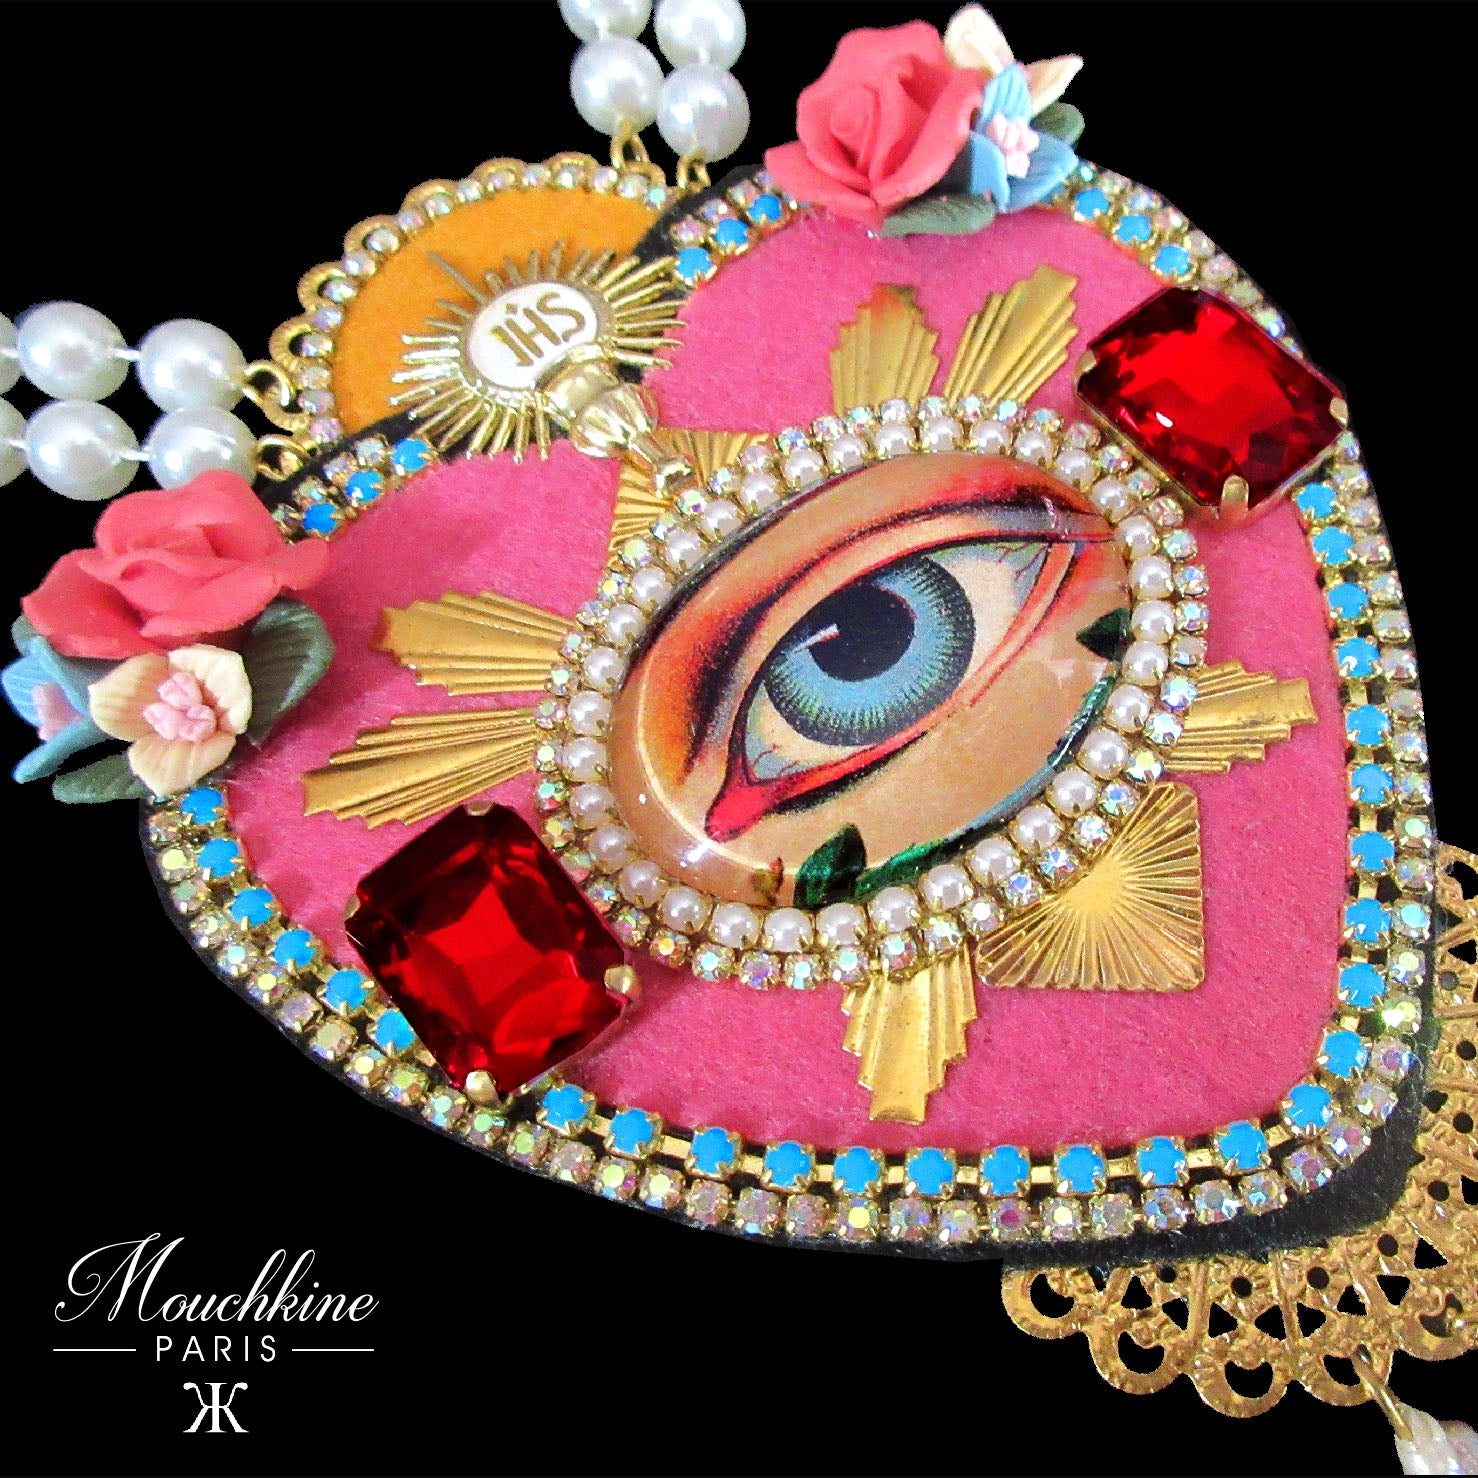 mouchkine jewelry luxury handmade in france pink heart with antique eye necklace